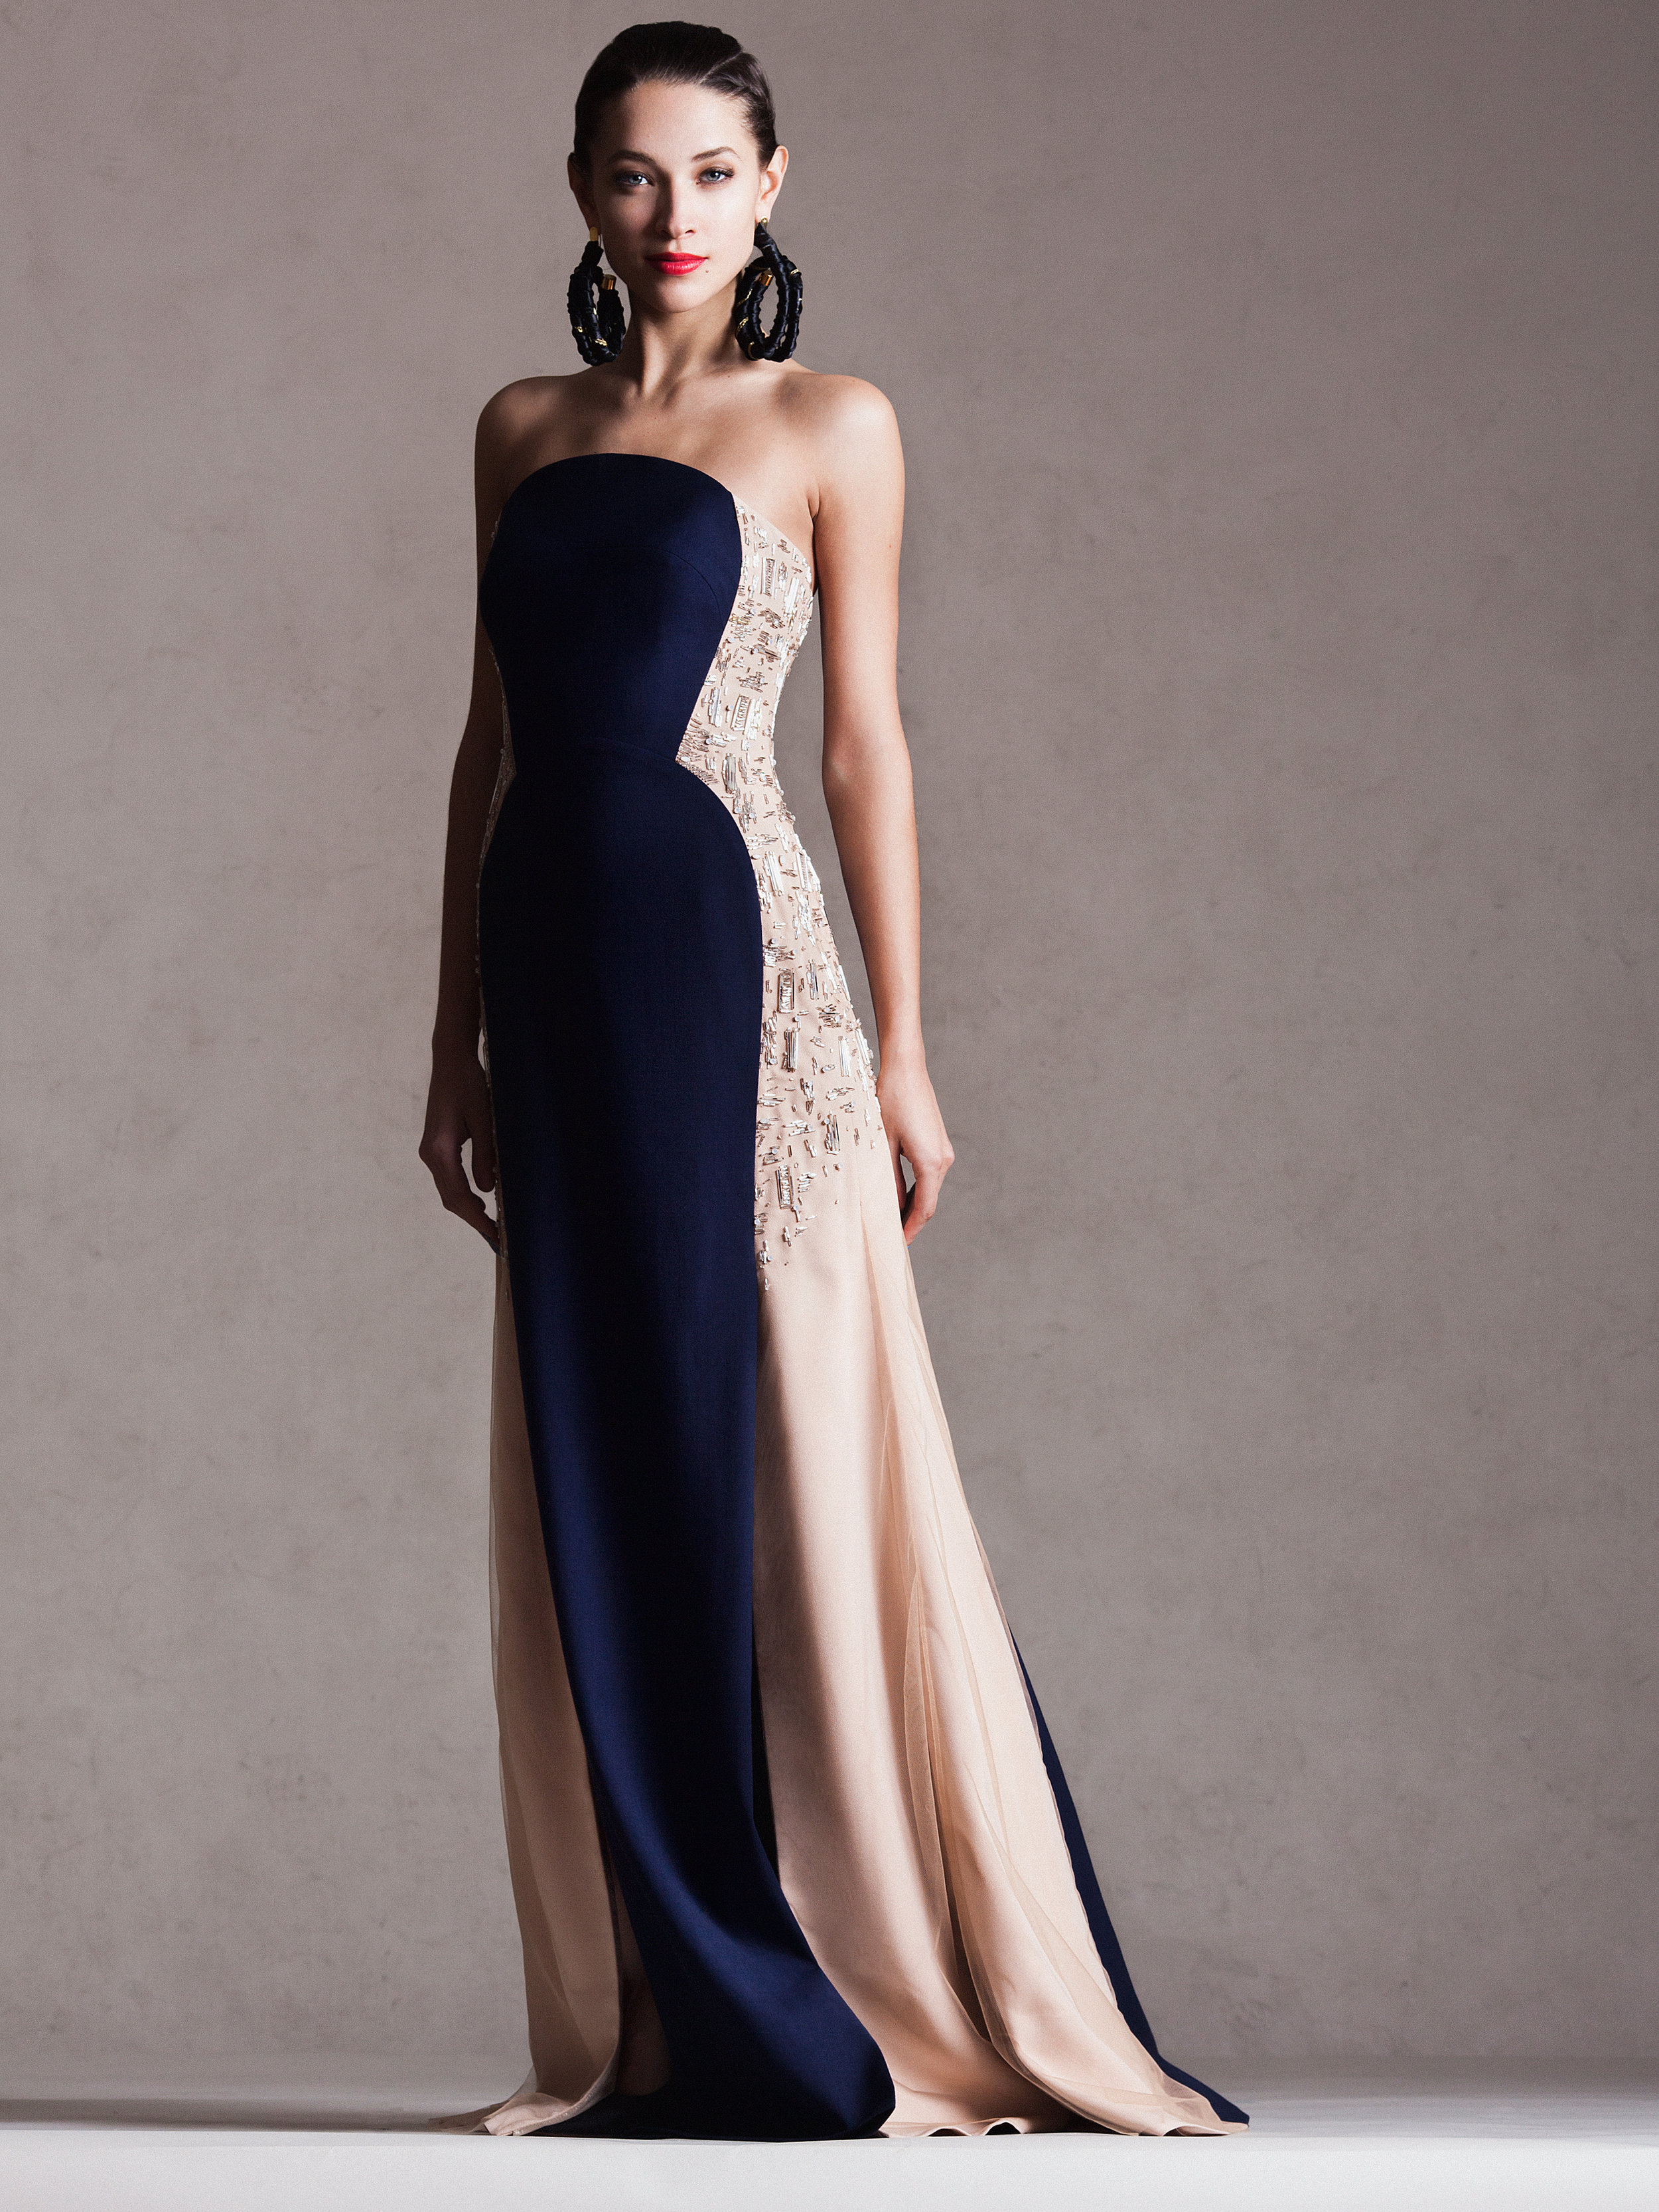 Lucian-Matis-Lookbook-20150204-005c.jpg